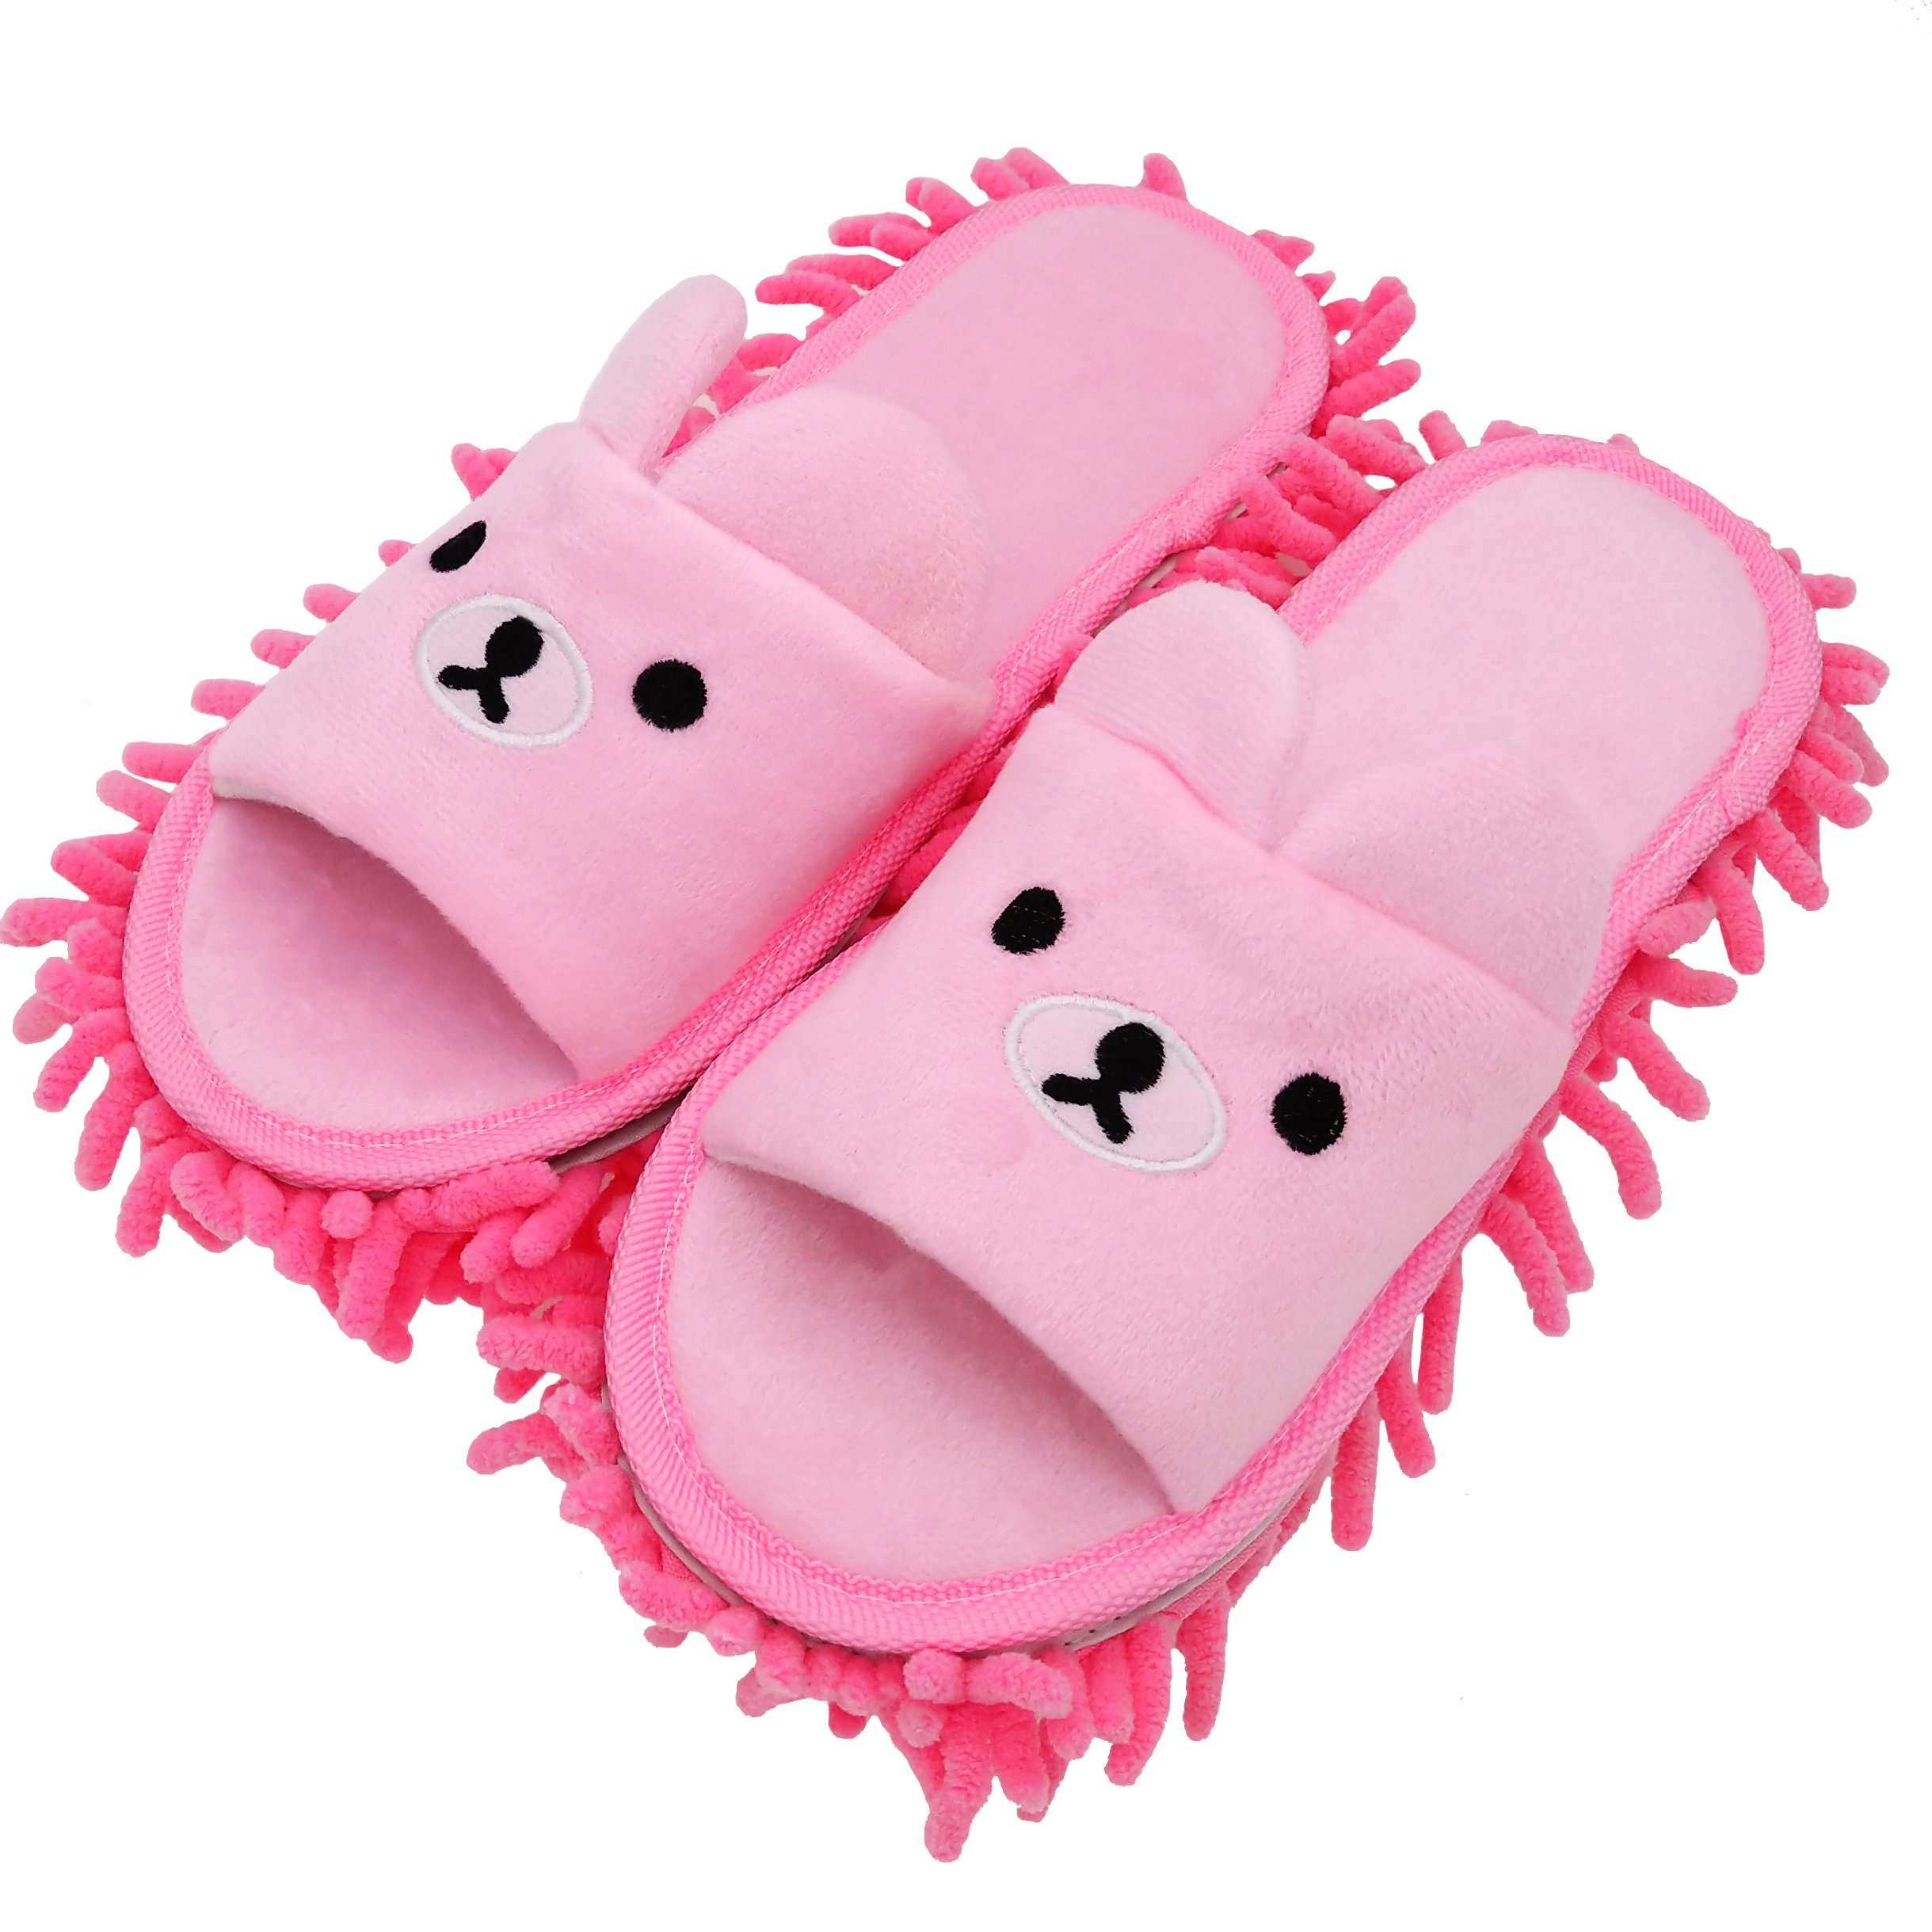 Selric Bear Image Super Chenille Microfiber Washable Mop Slippers Shoes for Kids, Floor Dust Dirt Hair Cleaner, Multi-sizes & Multi-Colors Available 7''[Kids Size]